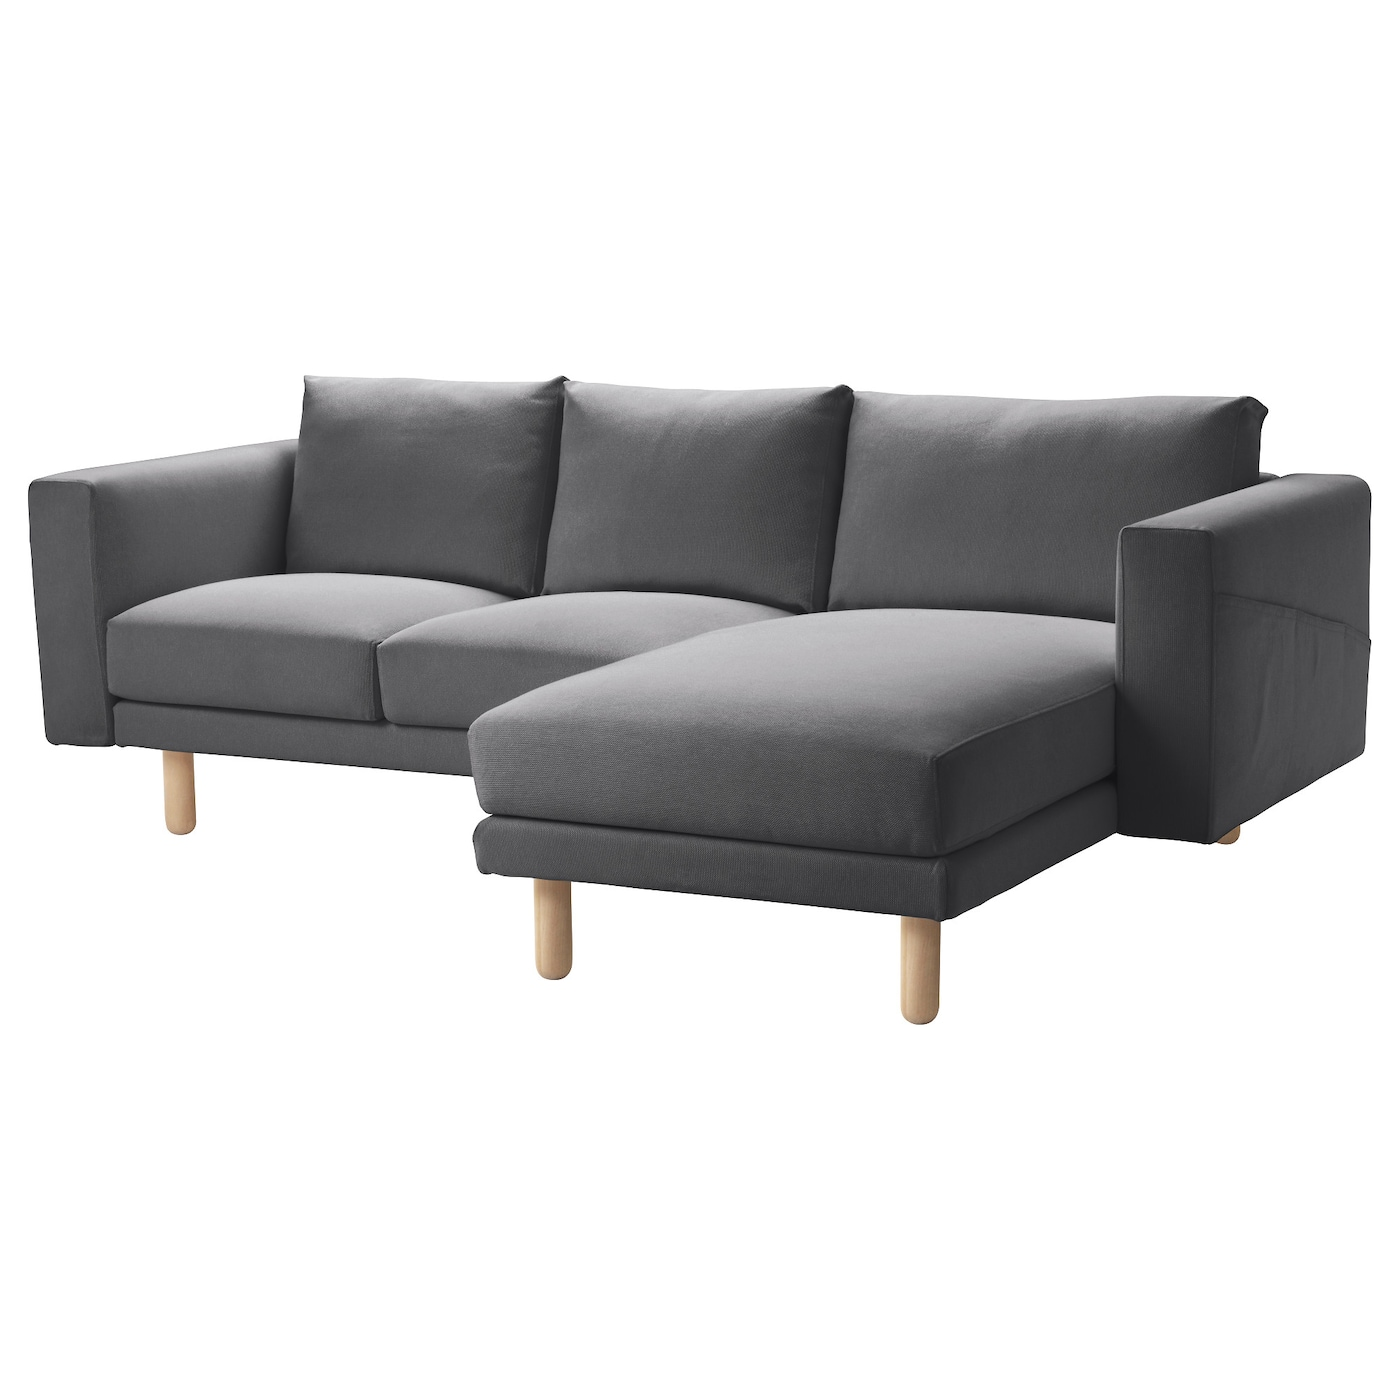 Norsborg cover two seat sofa w chaise longue finnsta dark for Chaise longue cover